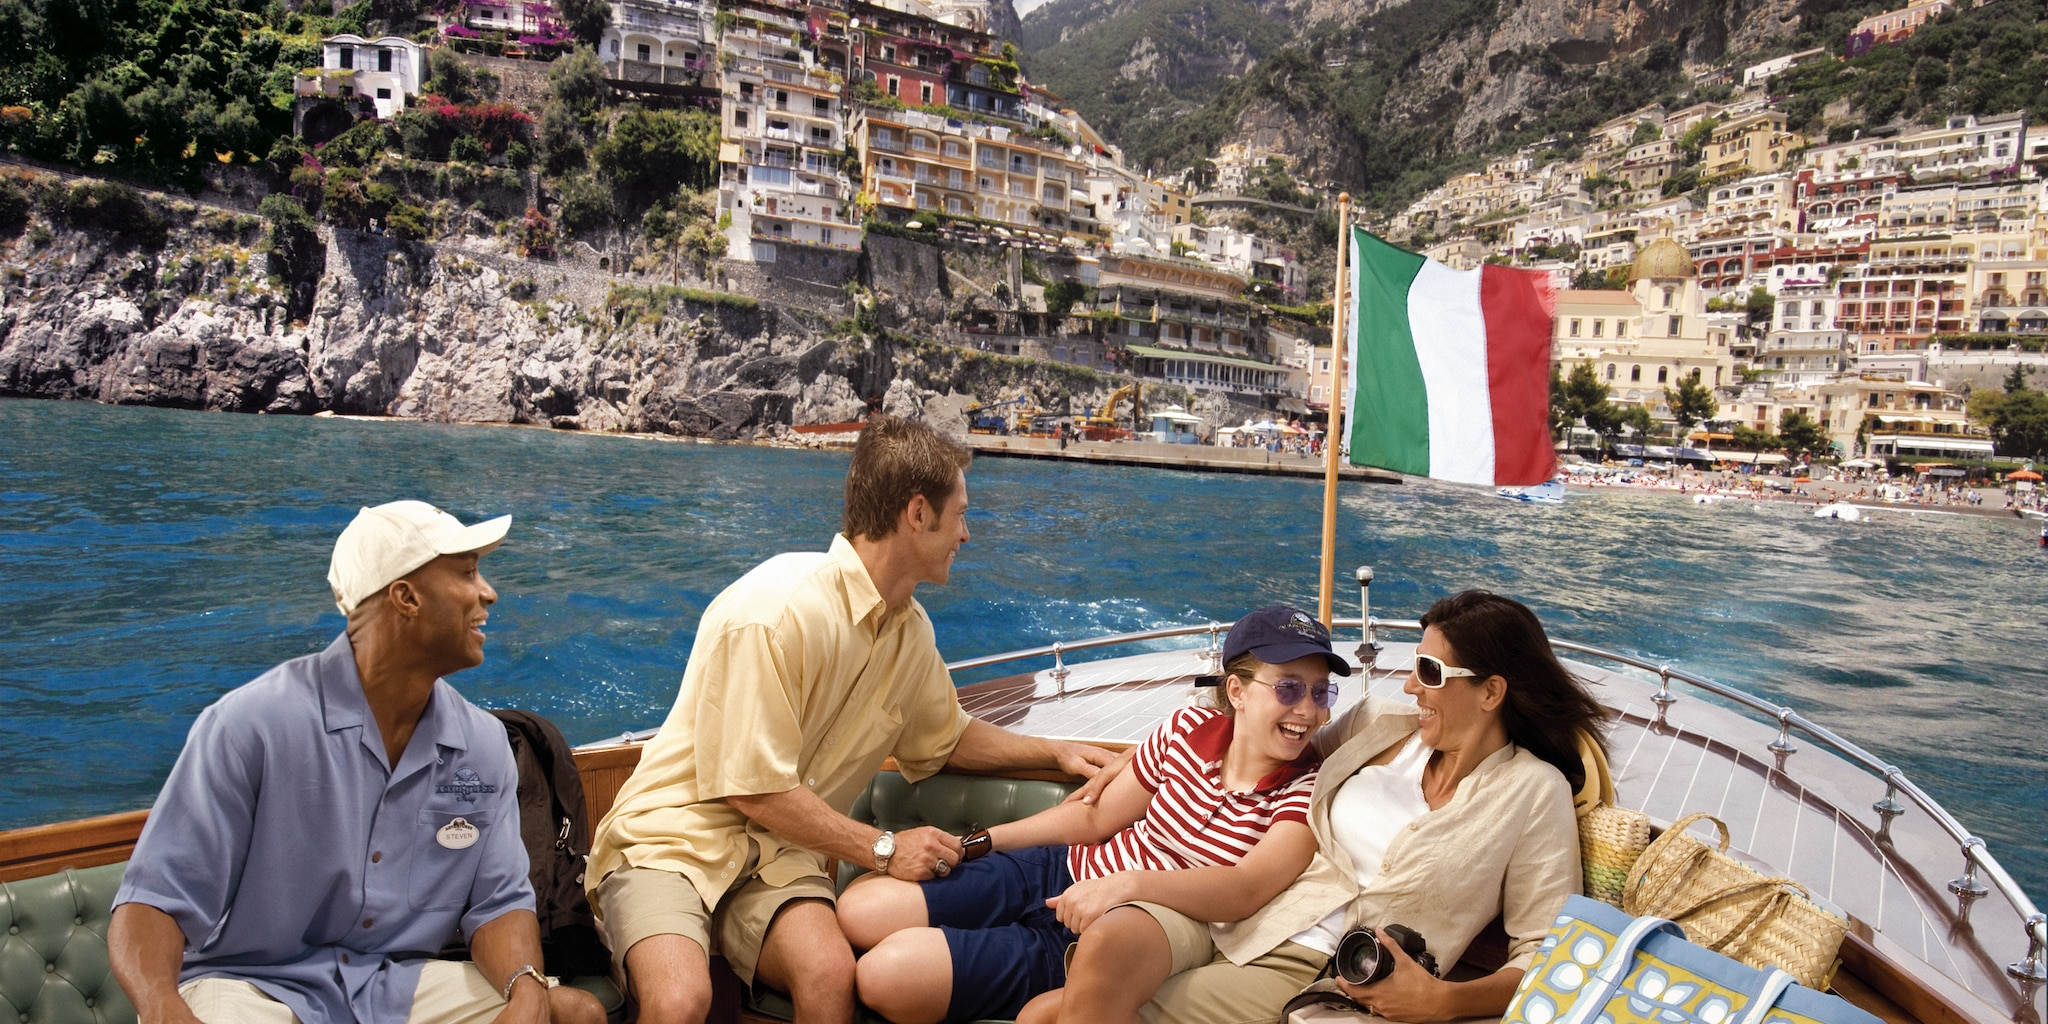 A family and an Adventure Guide sit on a boat cruising the scenic Amalfi Coast